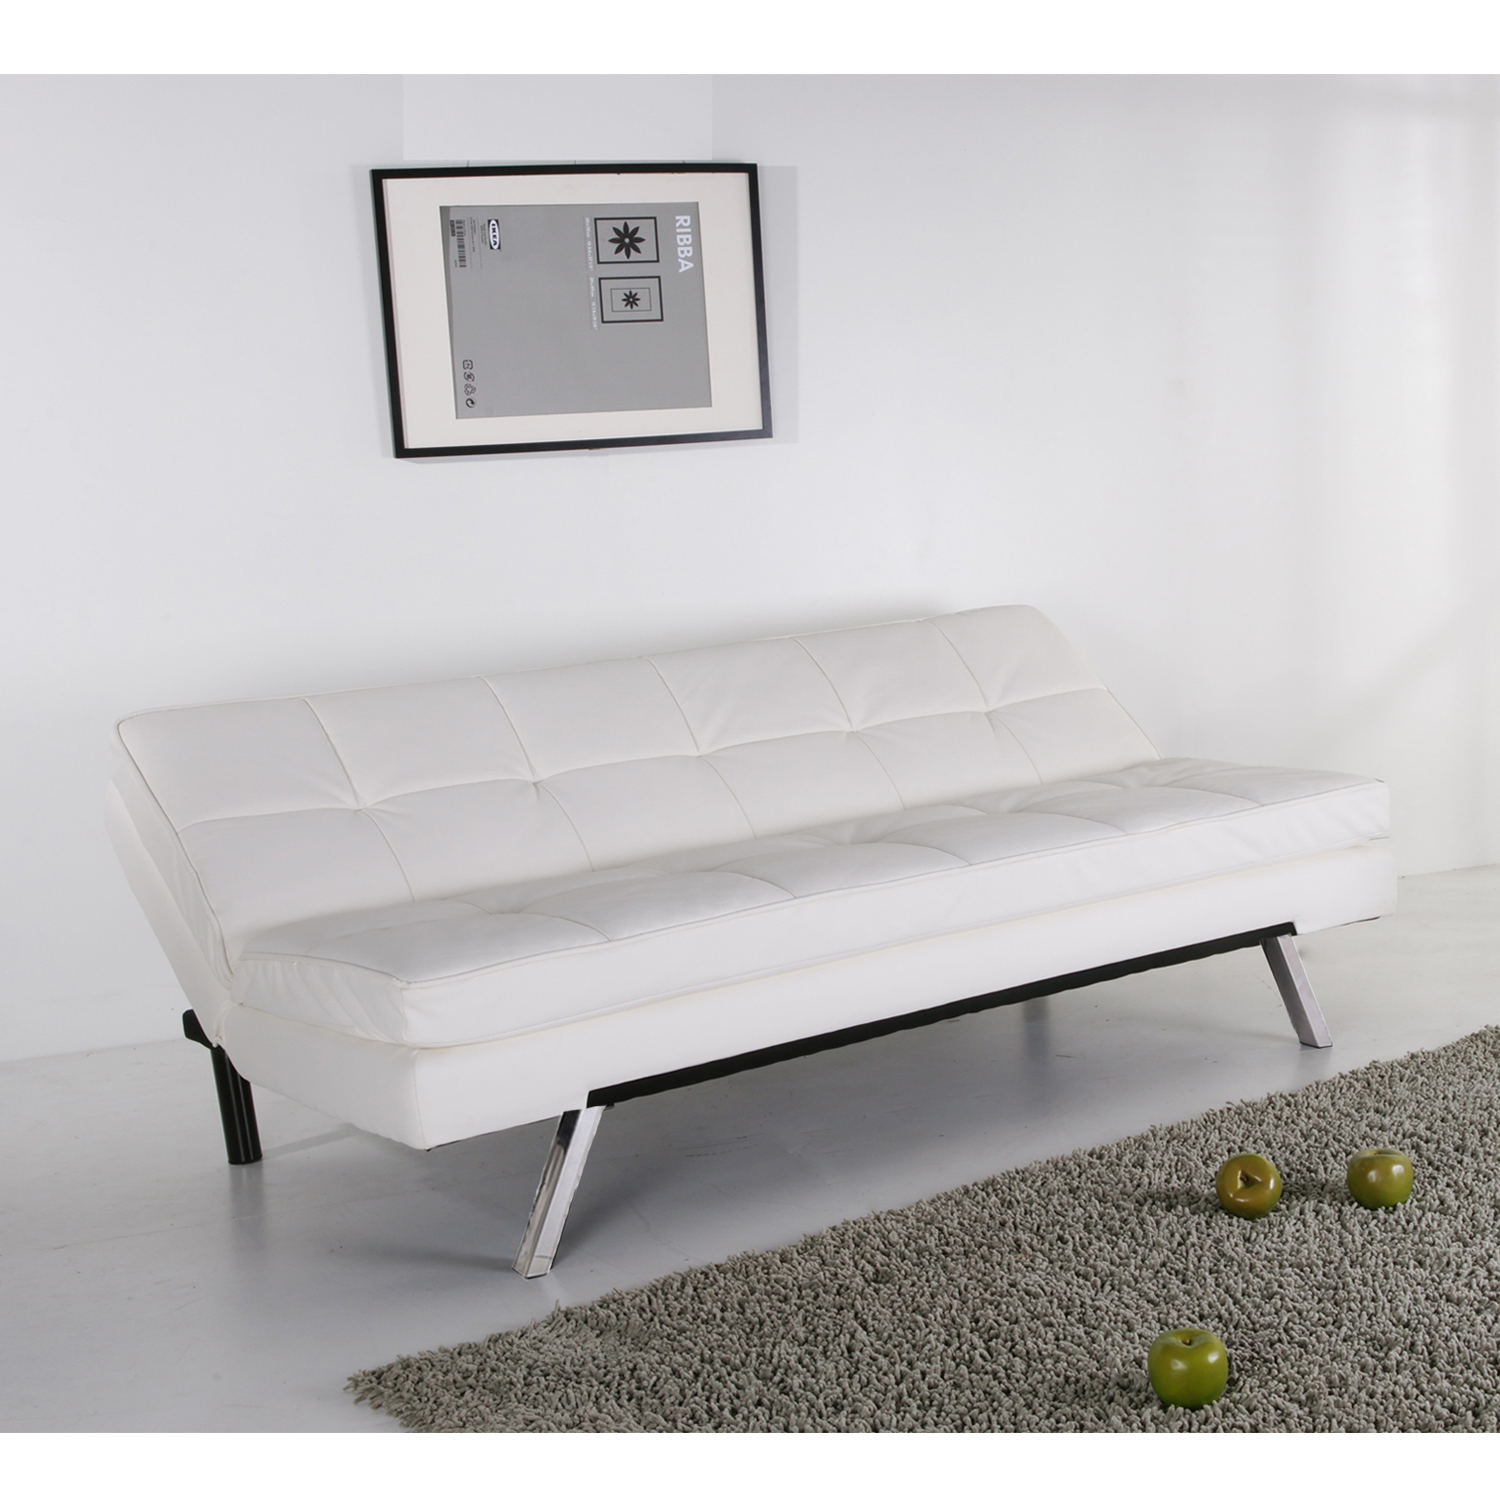 Furniture Source Philippines | Barkin Sofabed (White Faux Leather)